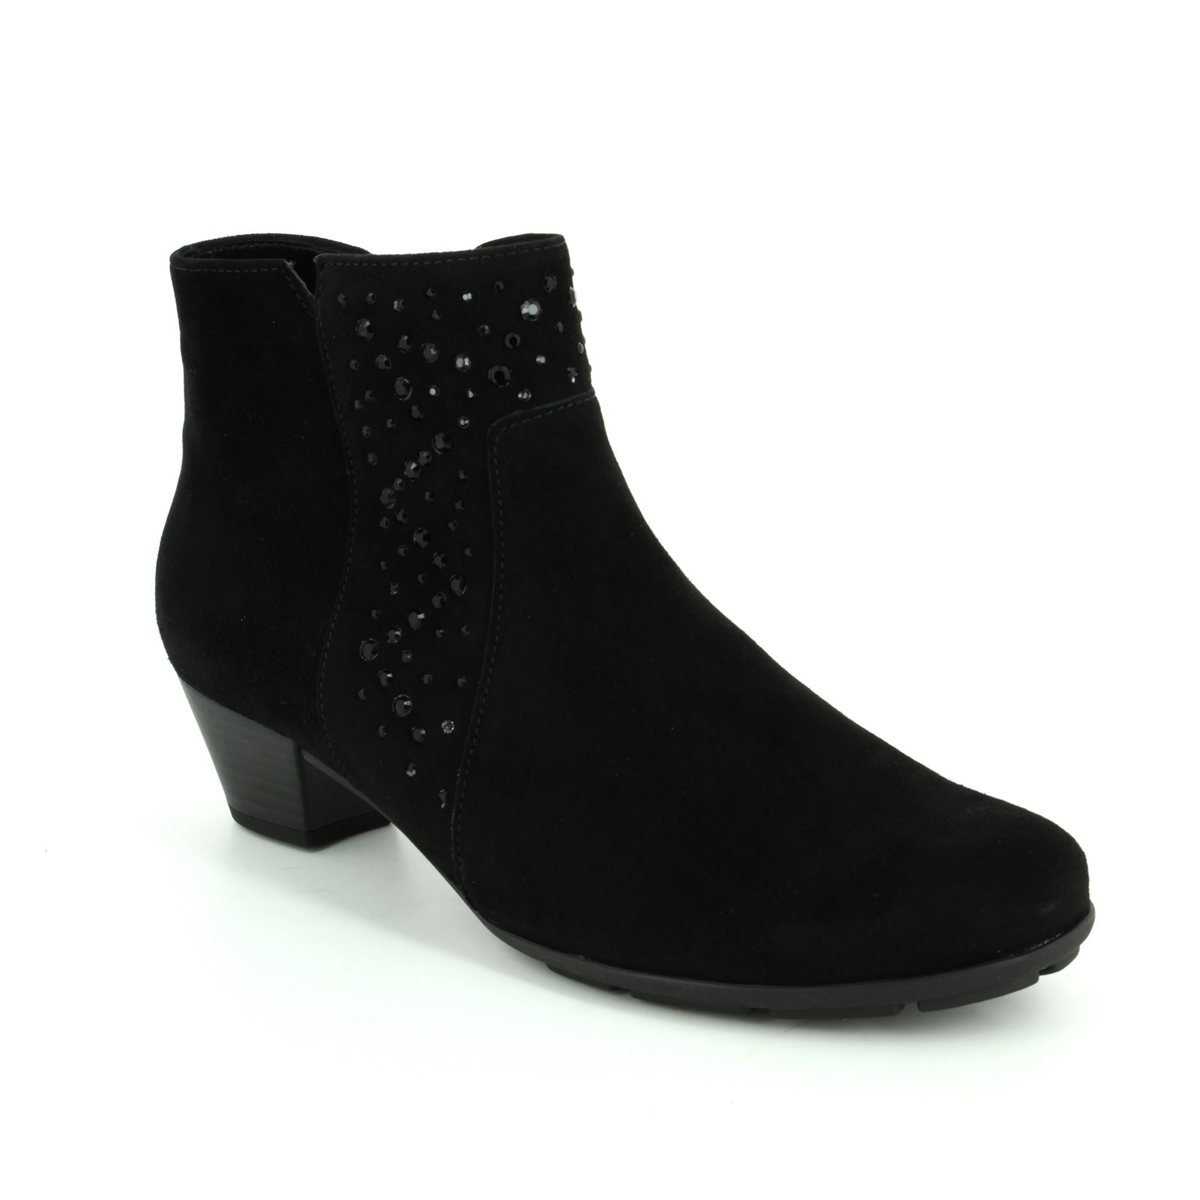 Gabor Ankle Boots - Black suede - 75.630.17 BRADY e3524119f5f